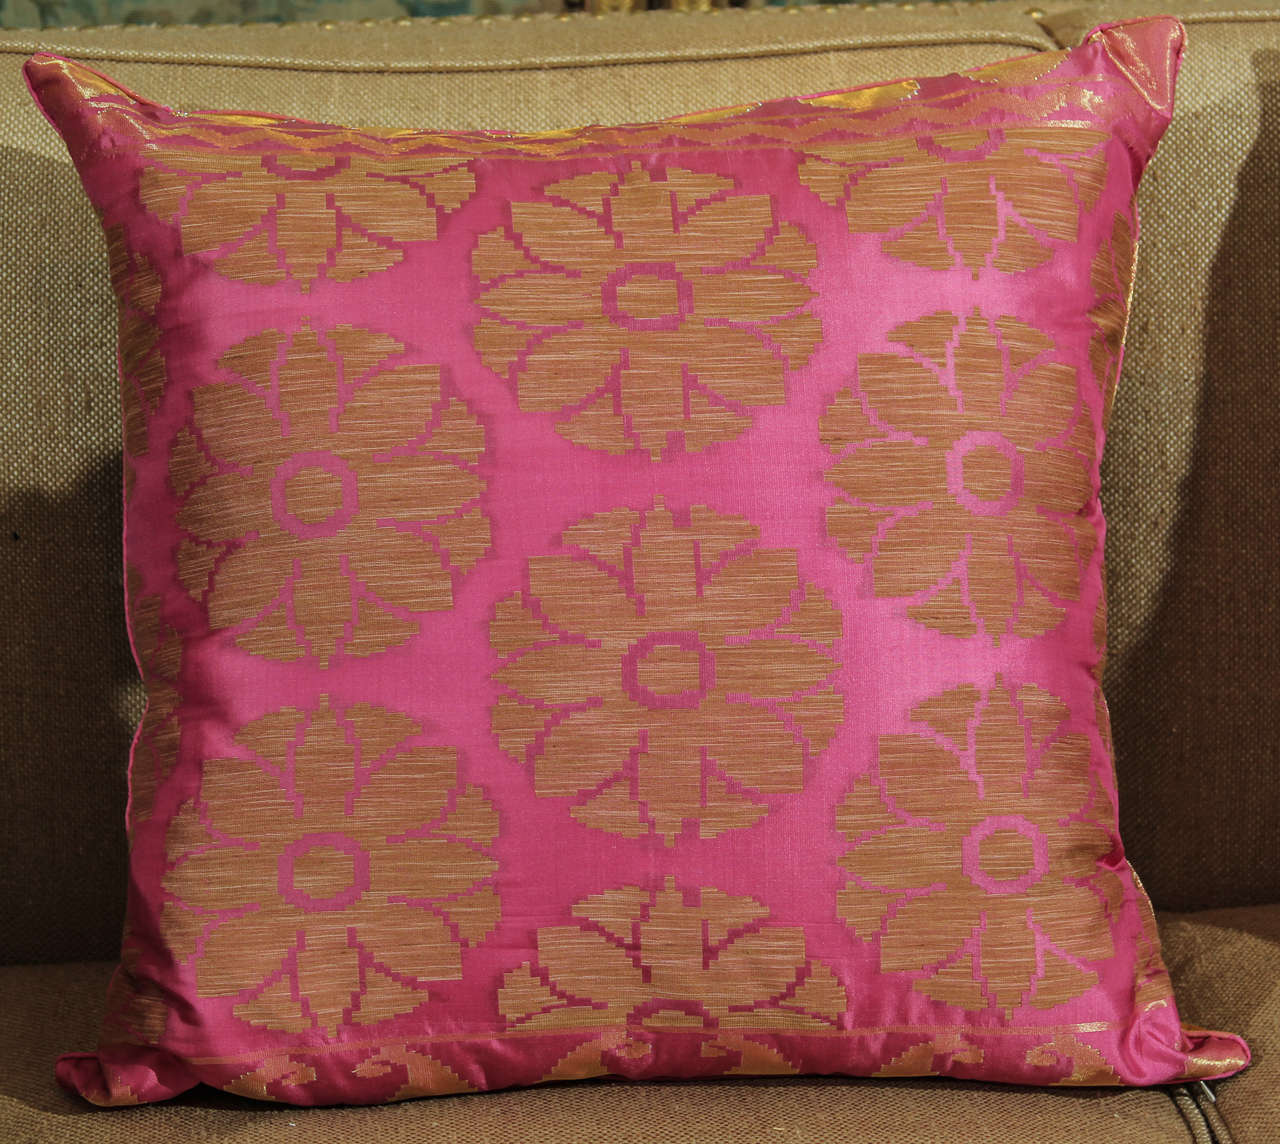 Pillows of Pink and Gold 5